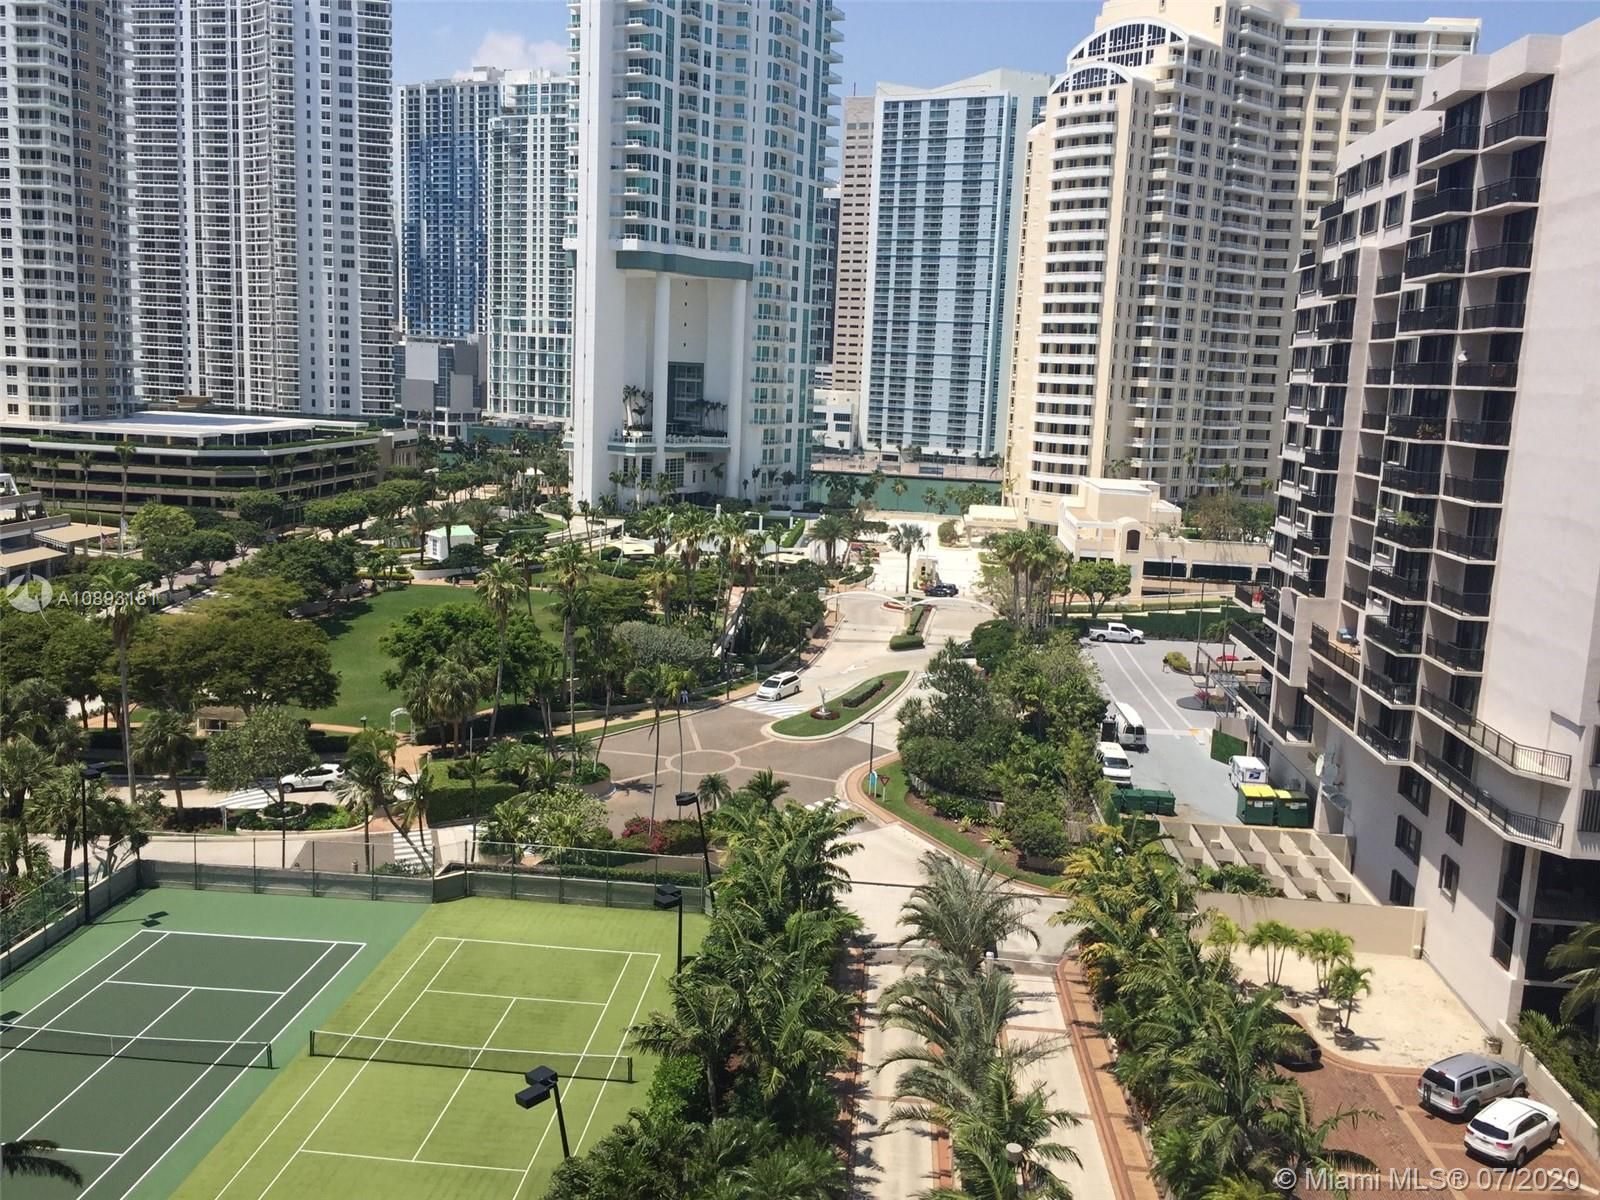 Brickell Key One #A1210 - 520 Brickell Key Dr #A1210, Miami, FL 33131